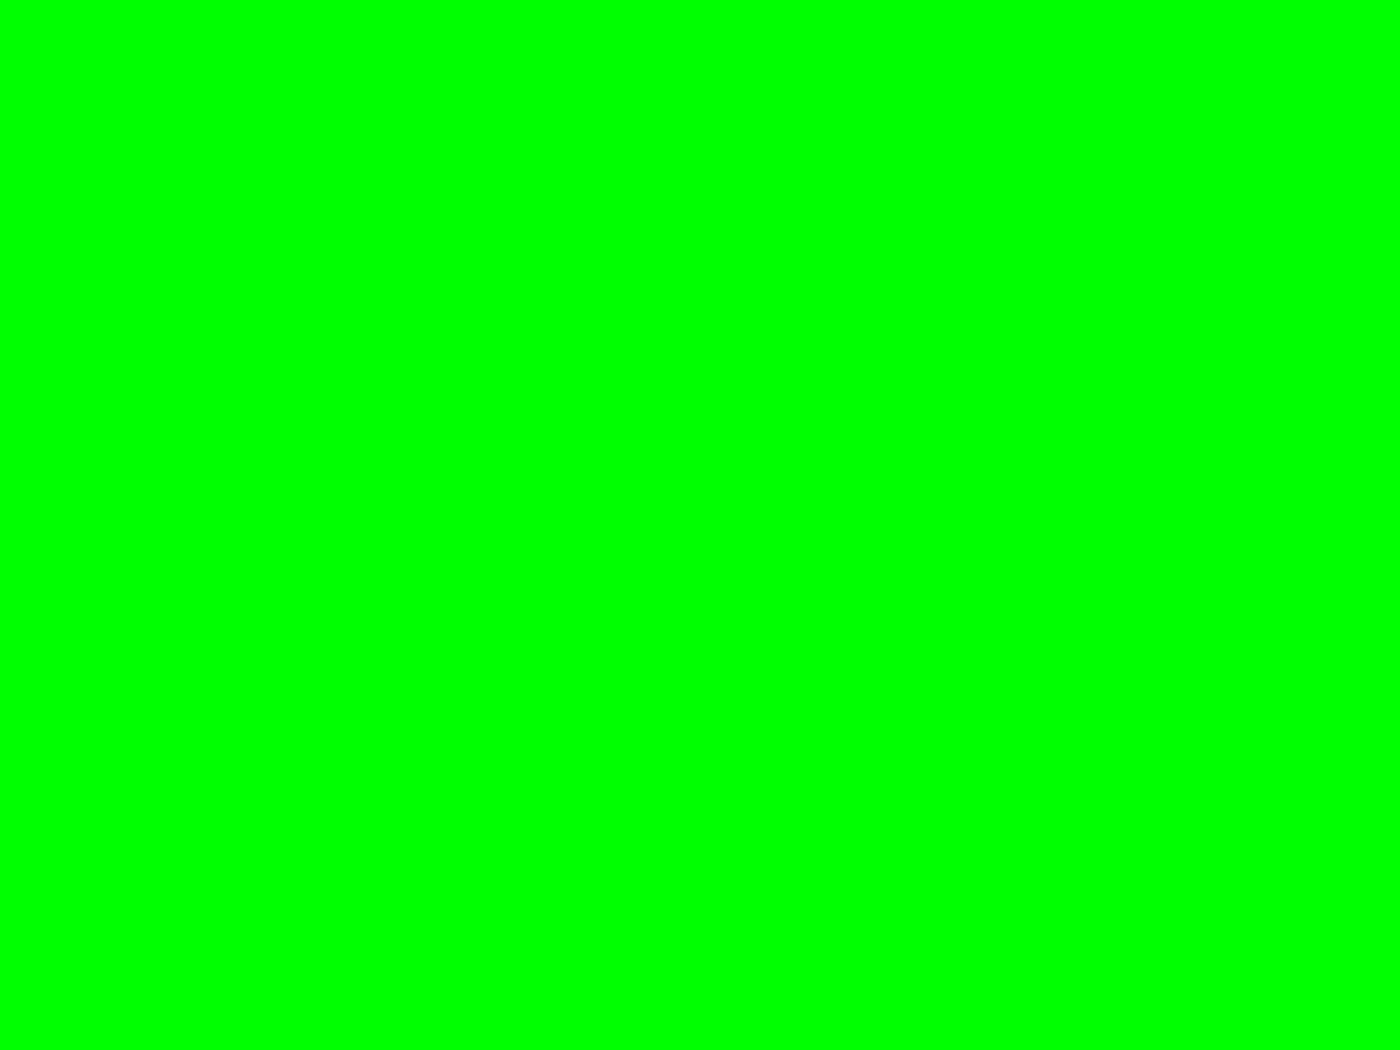 1400x1050 Lime Web Green Solid Color Background